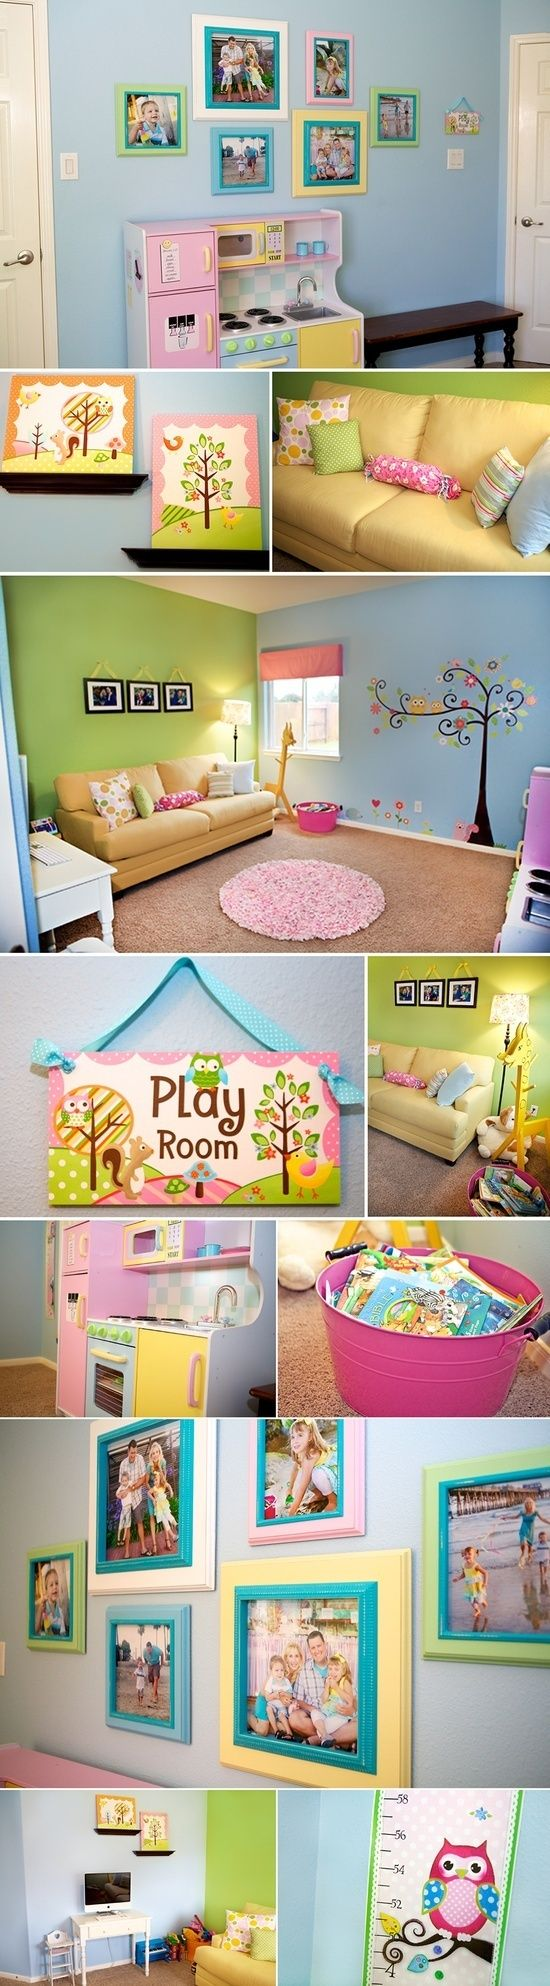 Maybe not for a play room but I would so love to put some of these decorations in Peyton's room